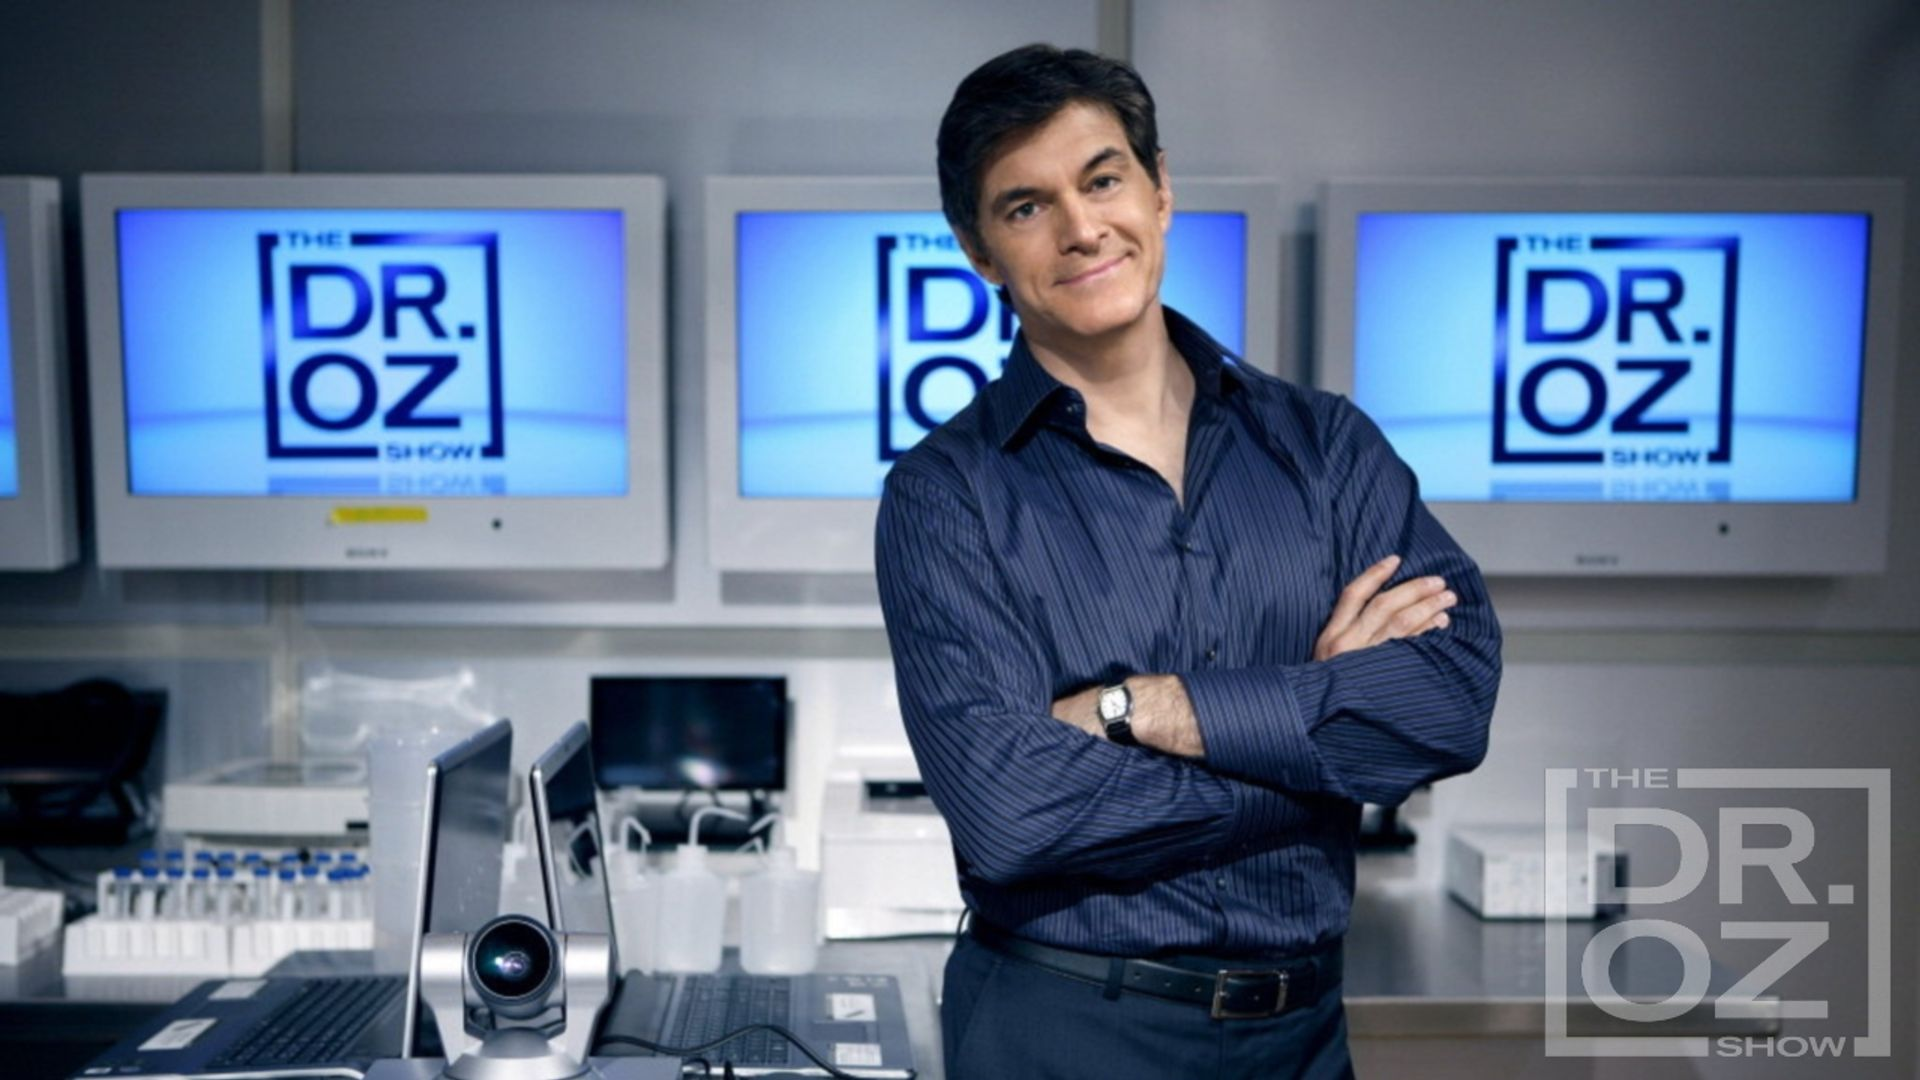 The Dr Oz Show Season 3 Where To Watch Every Episode Reelgood